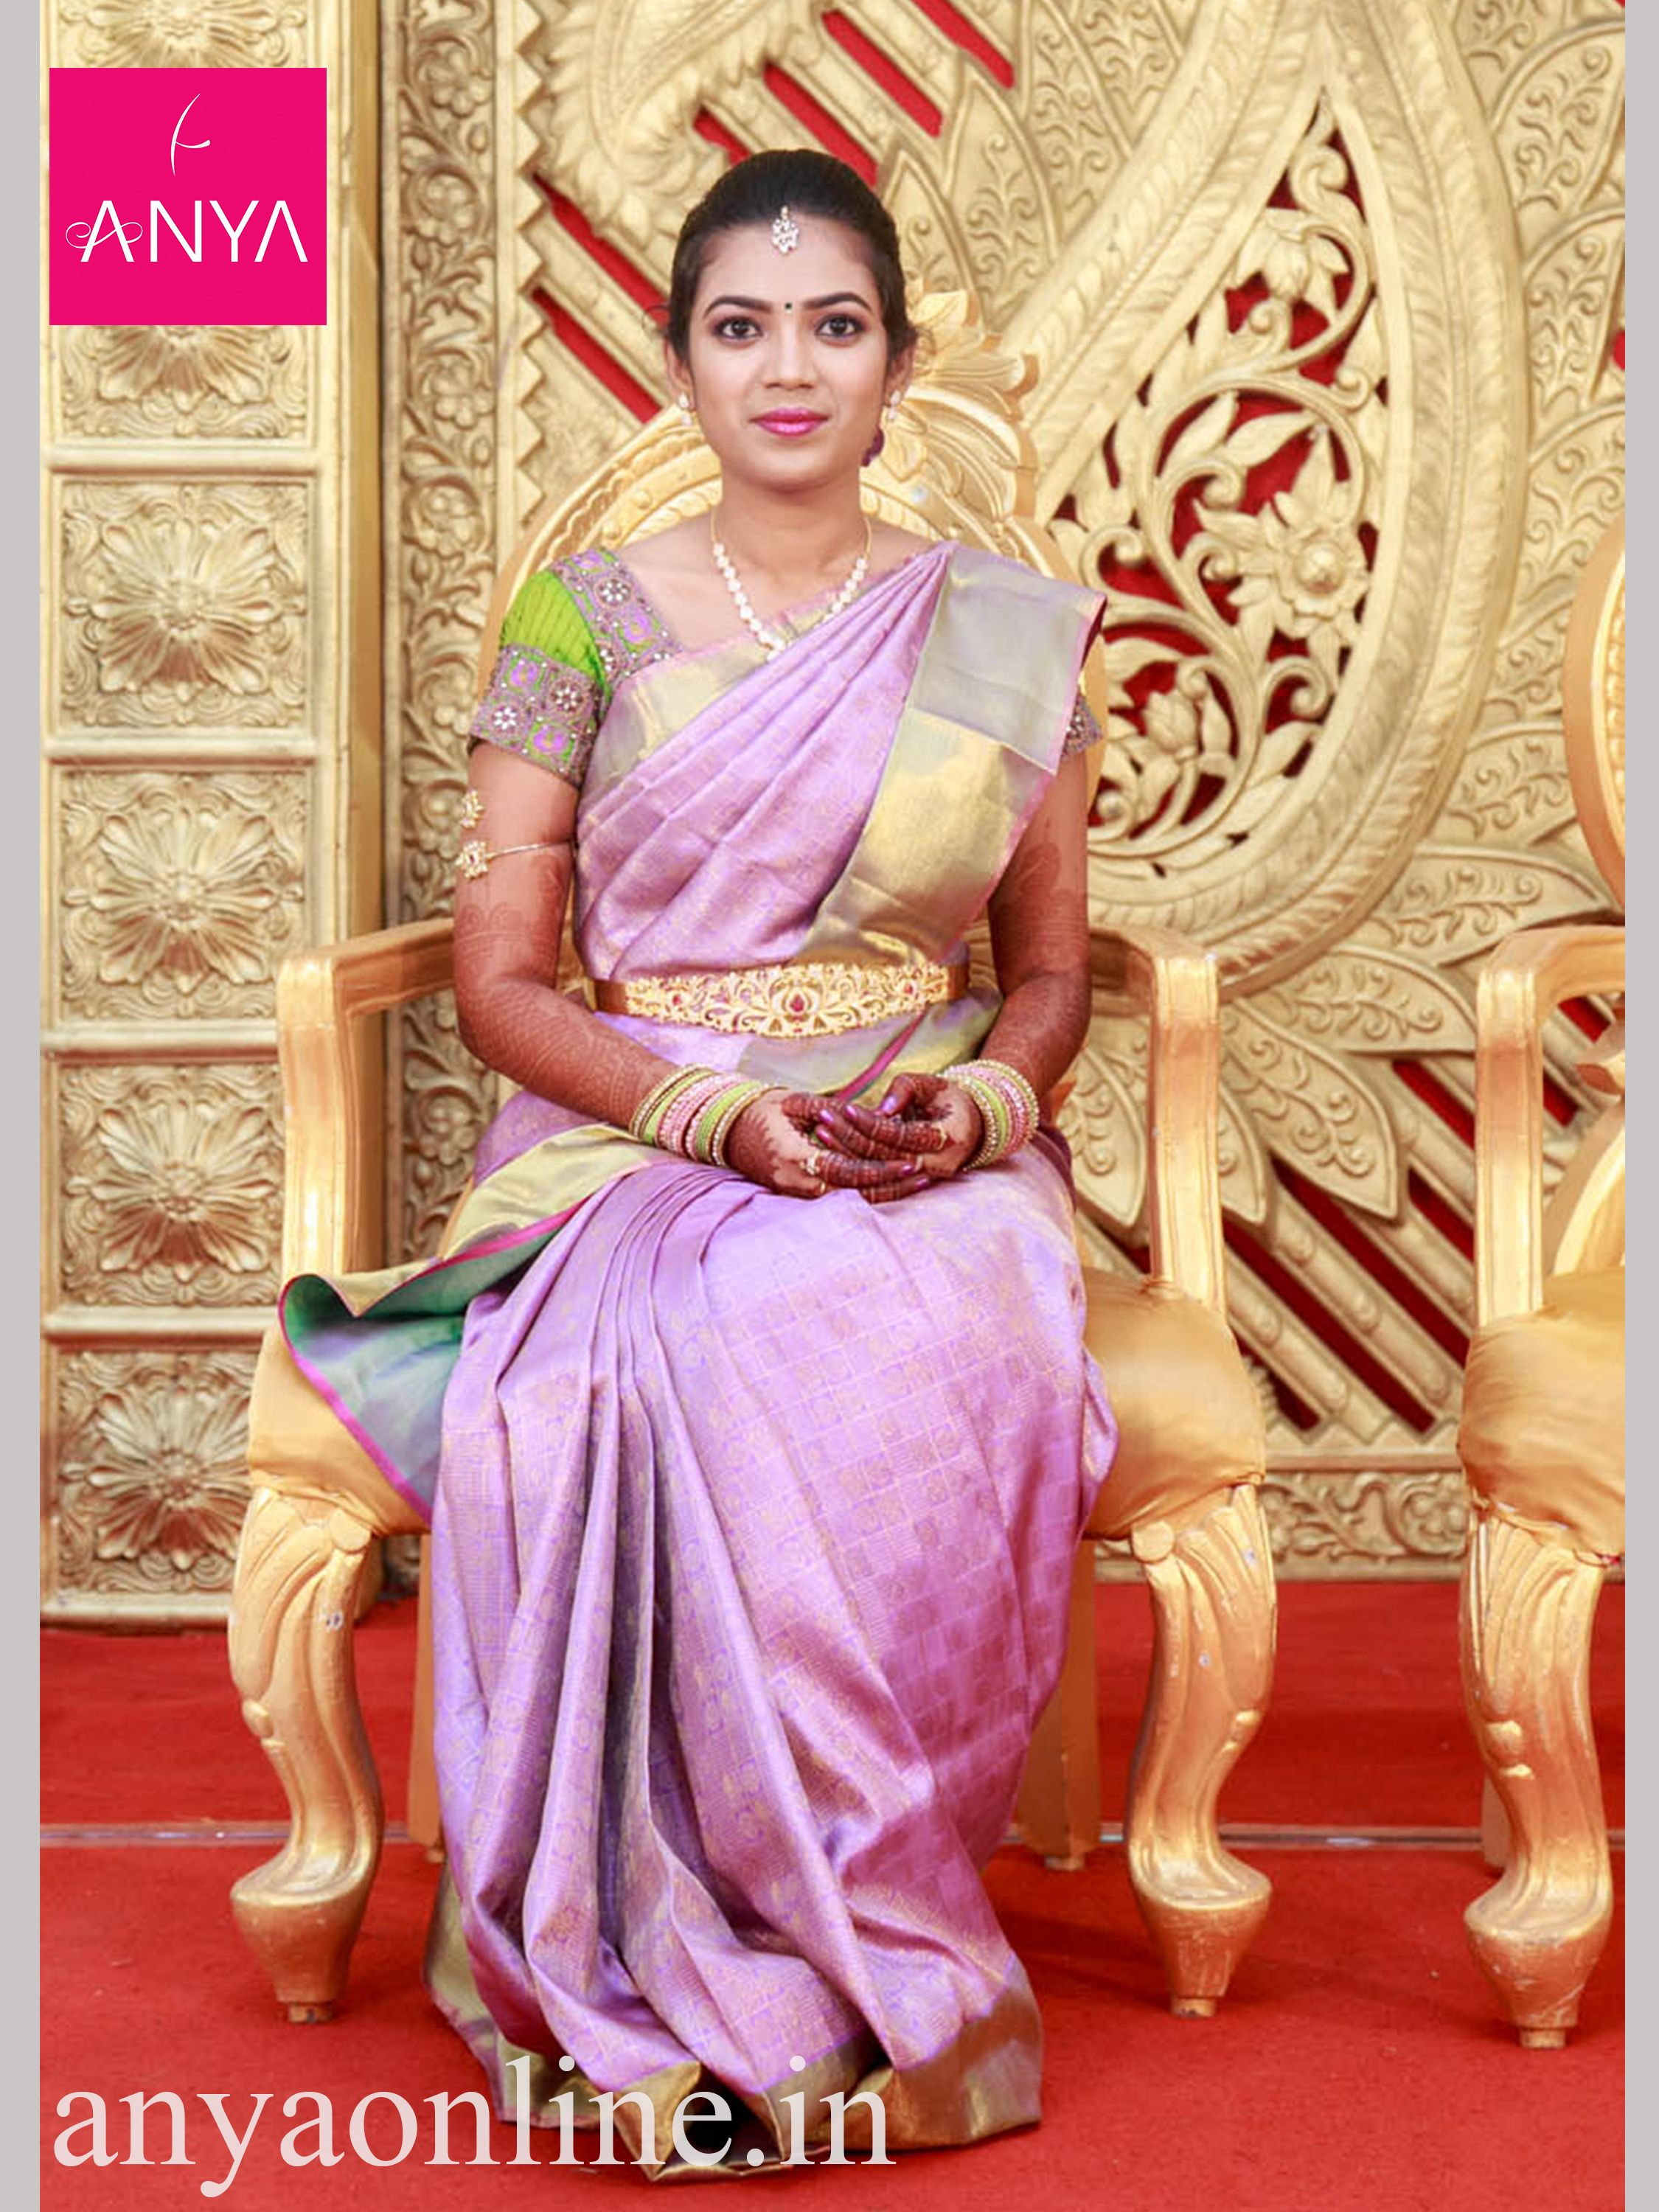 da388a2d66 Anya Boutique provides best collection of wedding dress, wedding blouses  and wedding sarees like silk saree, designer sarees in Coimbatore.